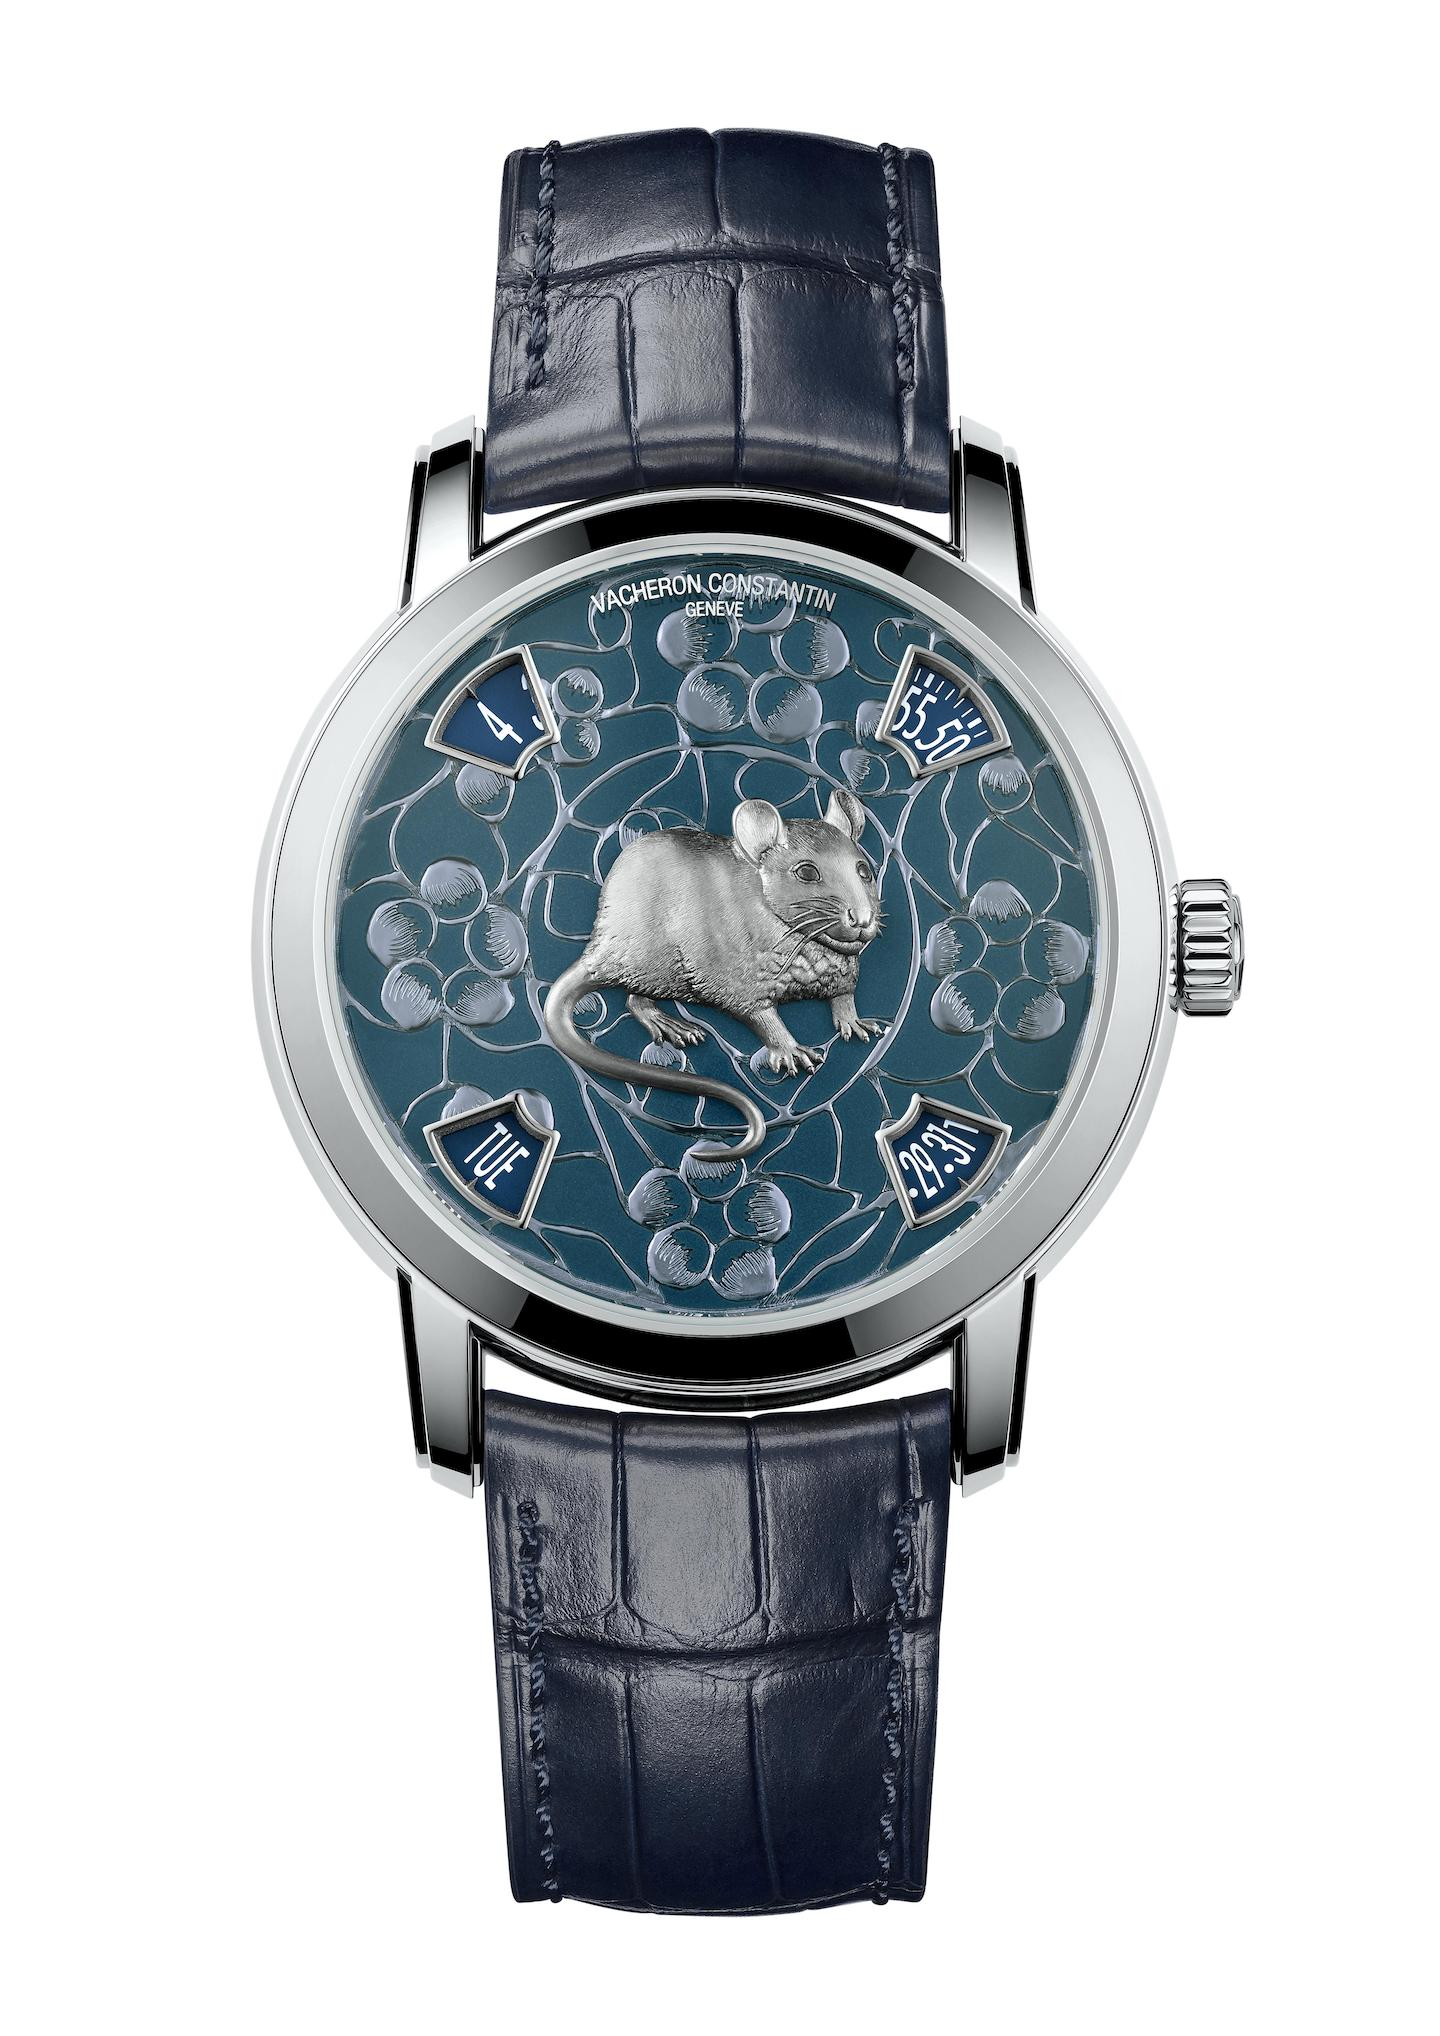 Vacheron Constantin Zodiac Chinese Year of the Rat 2020 Metiers d'Art watch.